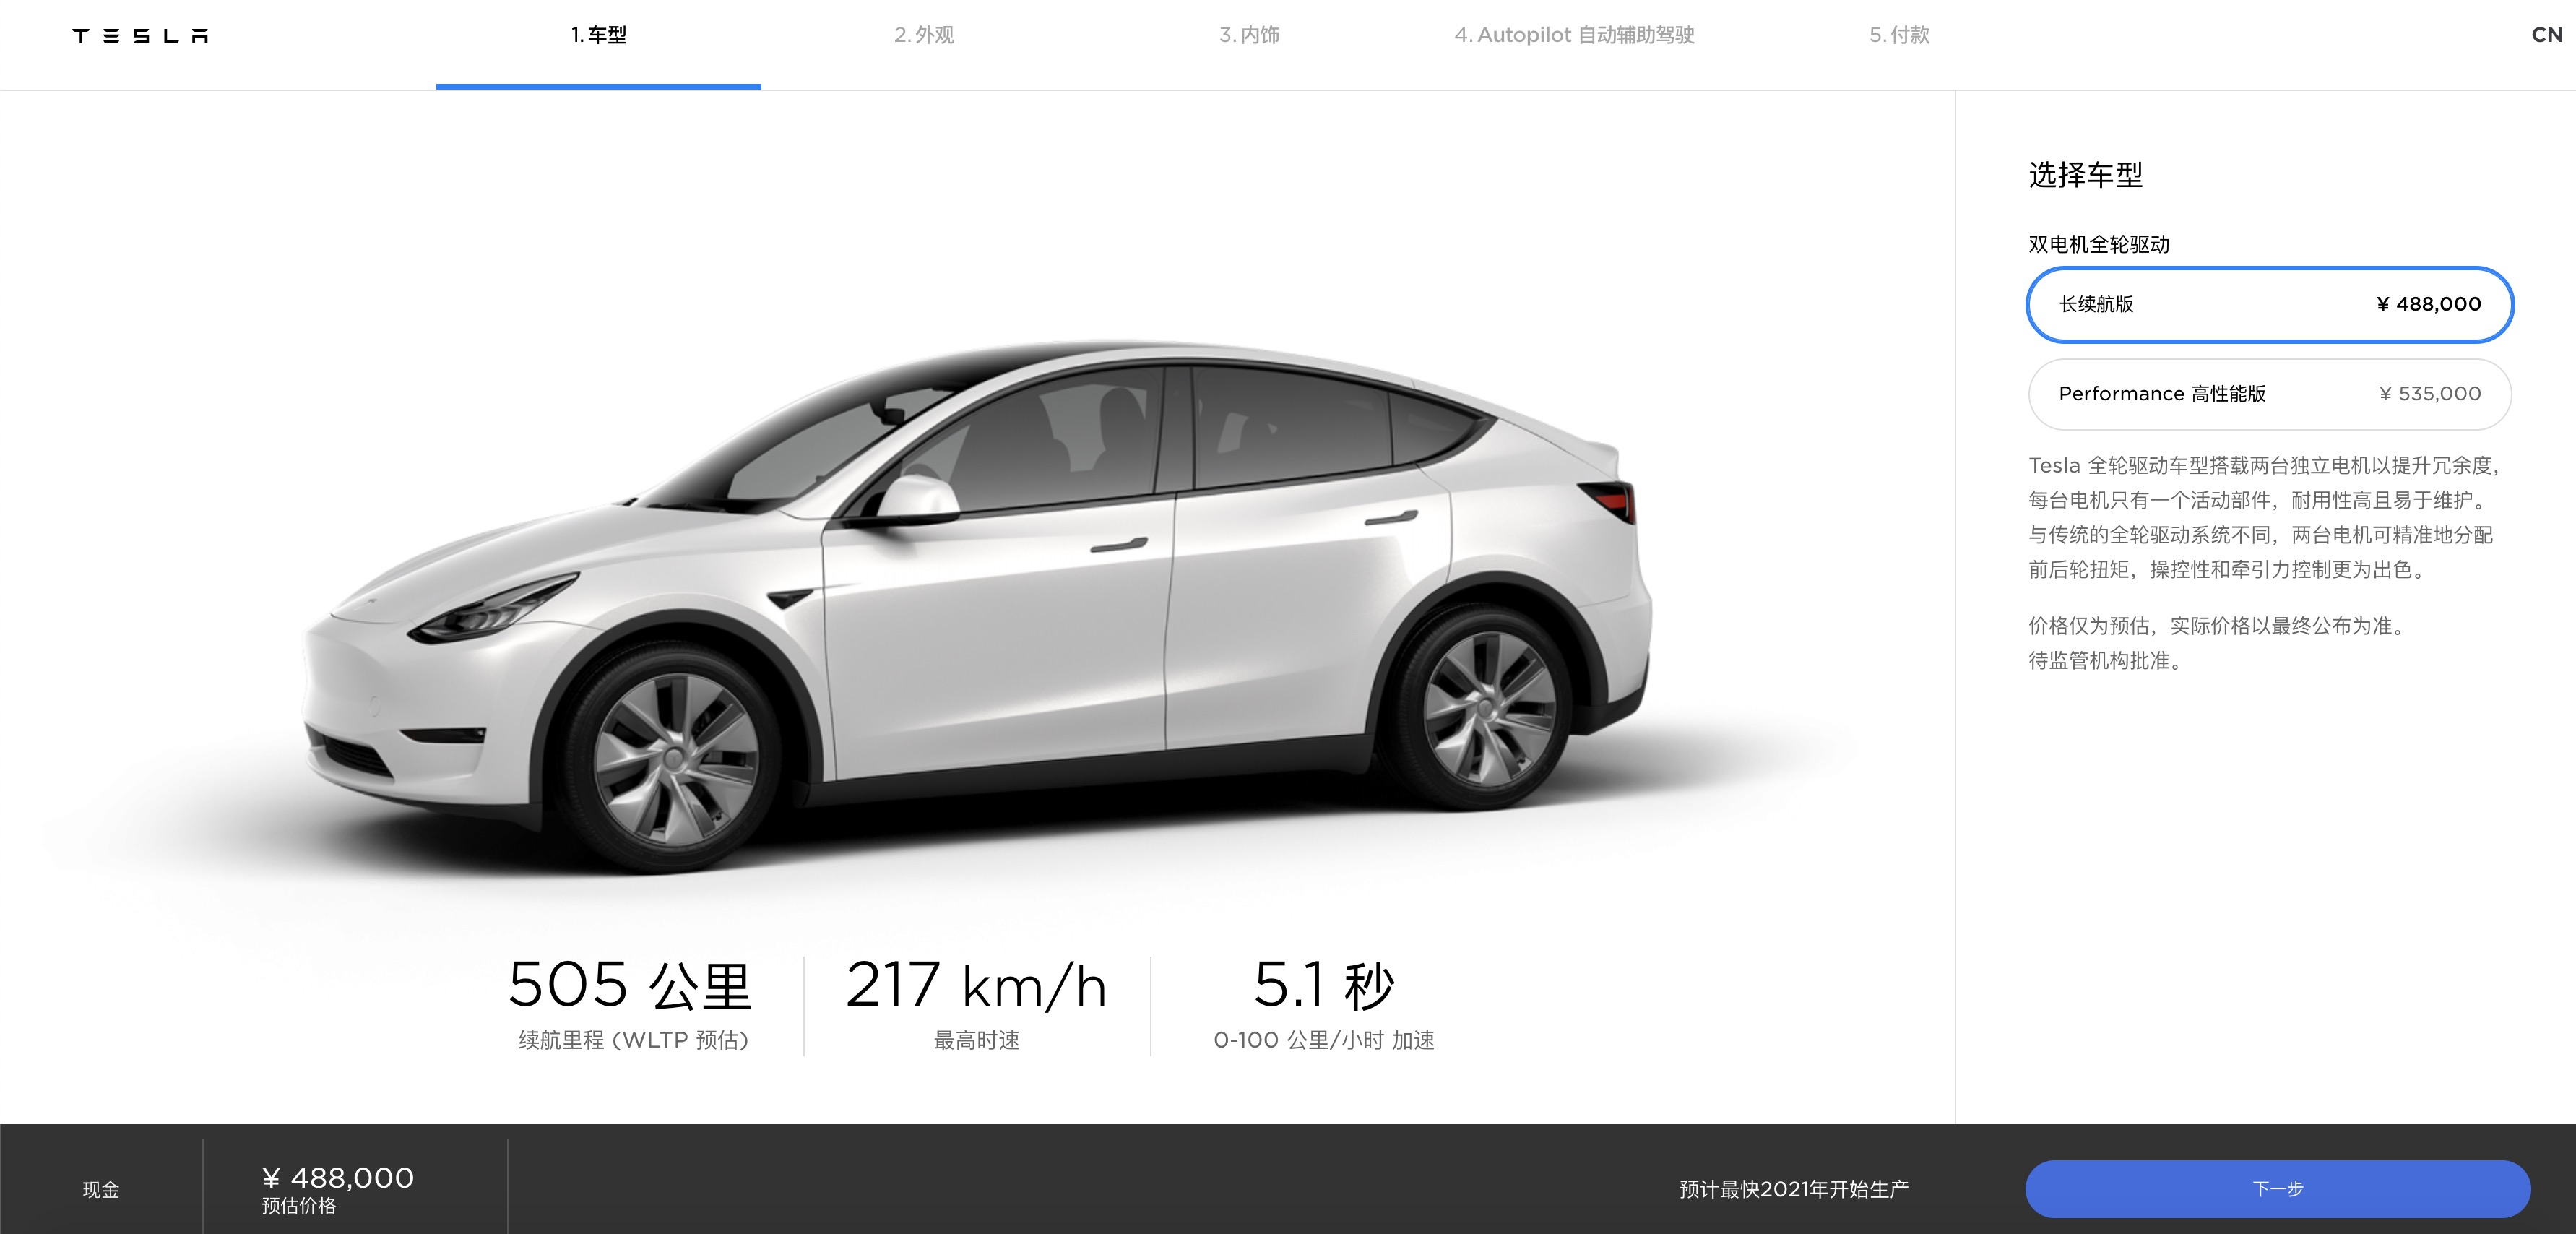 Tesla launches made-in-China Model Y configurator, starts taking orders -  Electrek